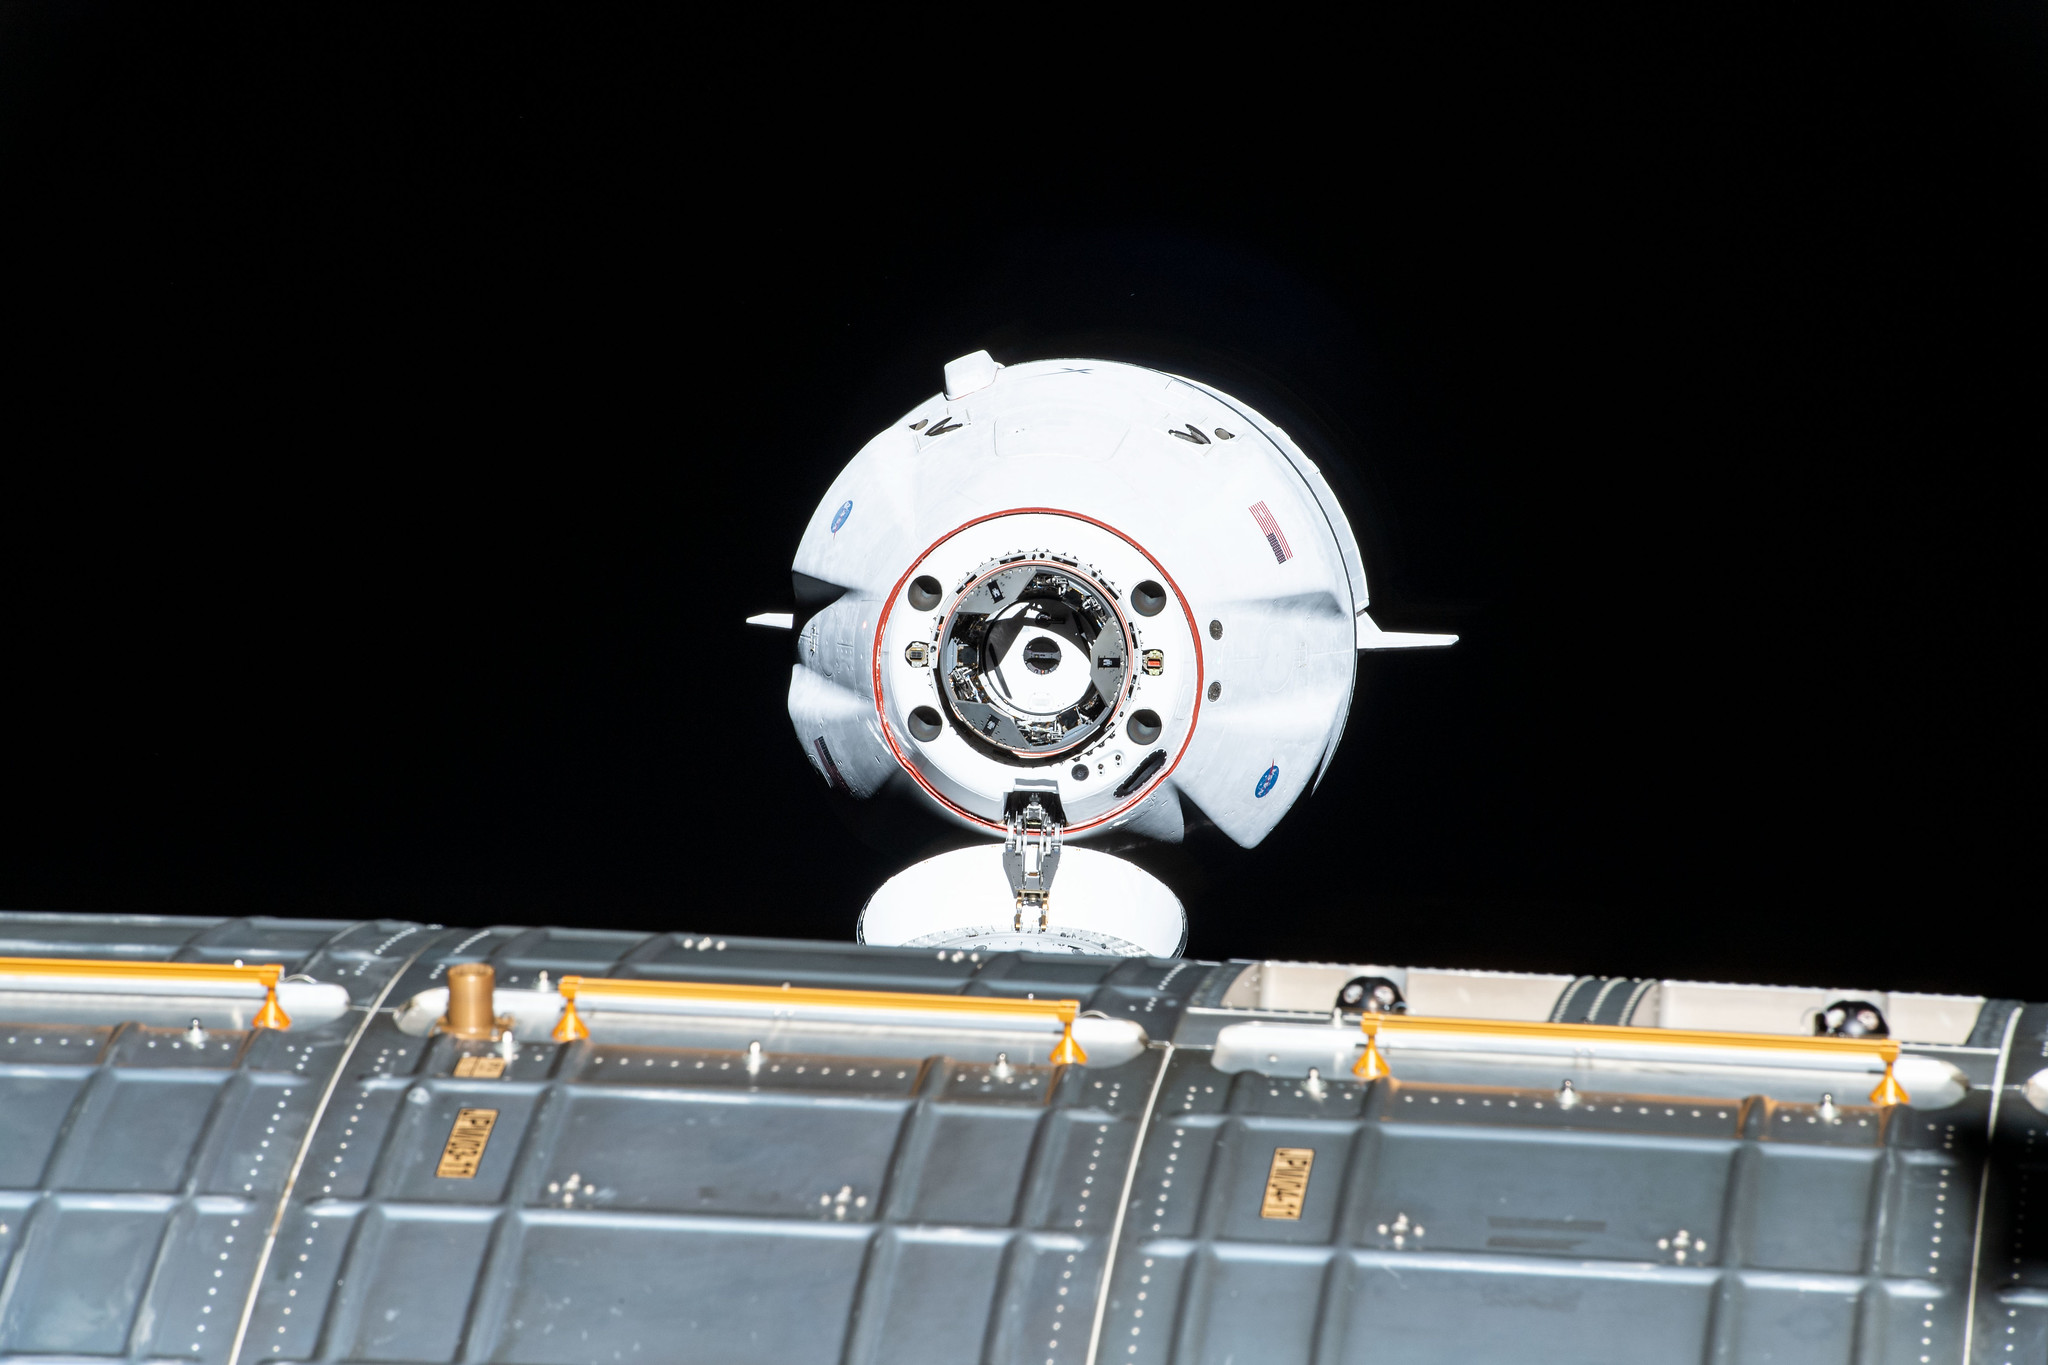 The SpaceX Cargo Dragon vehicle approaches the International Space Station for an autonomous docking to the Harmony module's forward international docking adapter